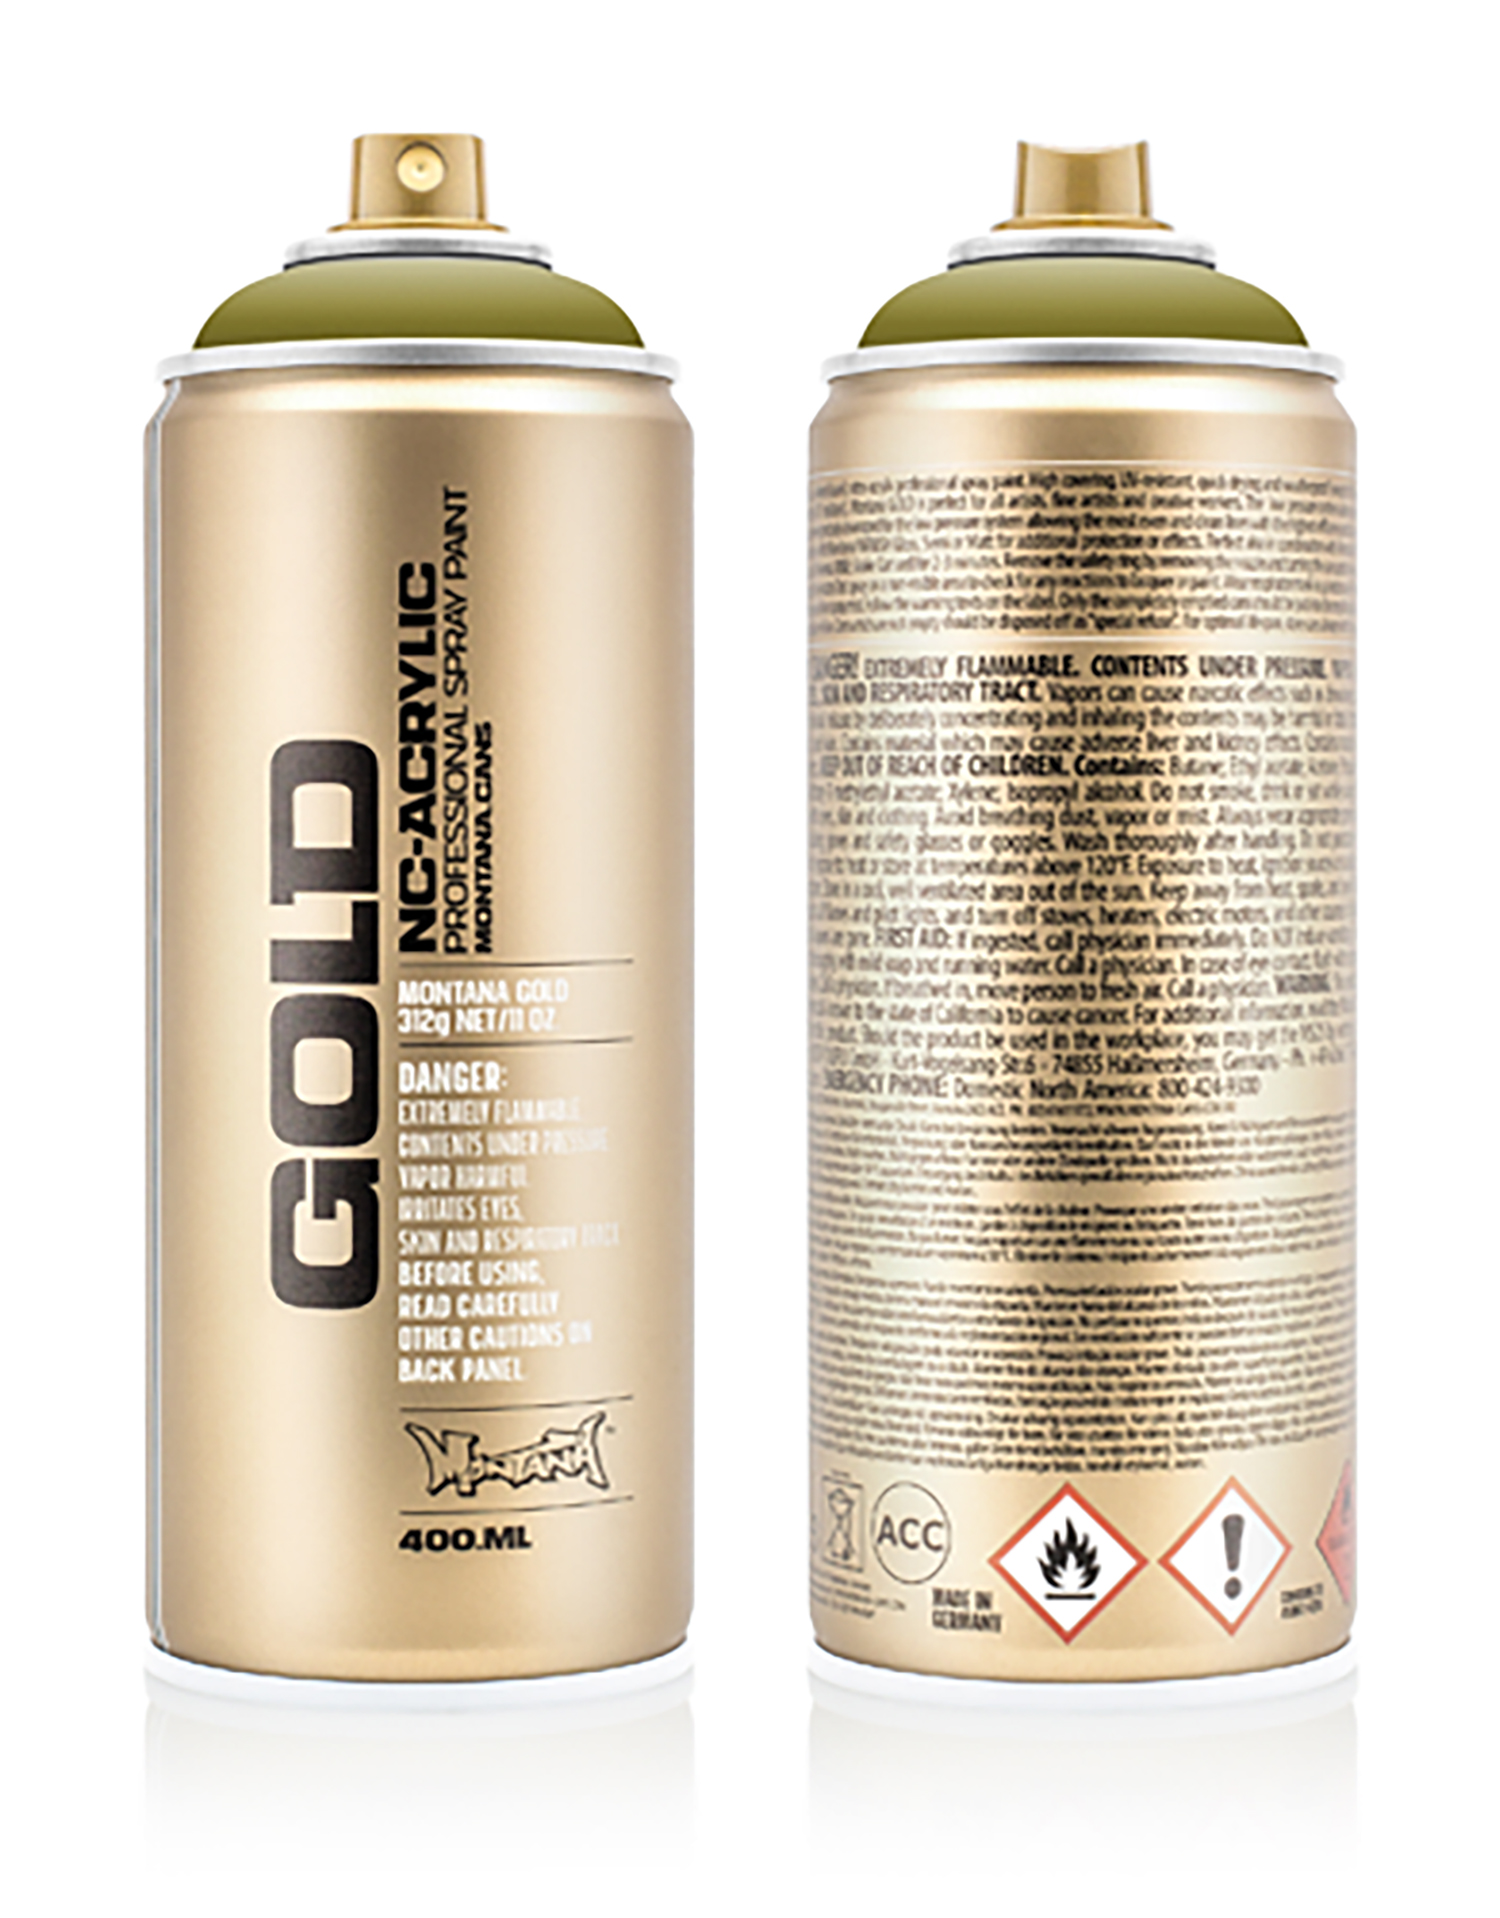 MONTANA-GOLD-SPRAY-400ML-G-1140